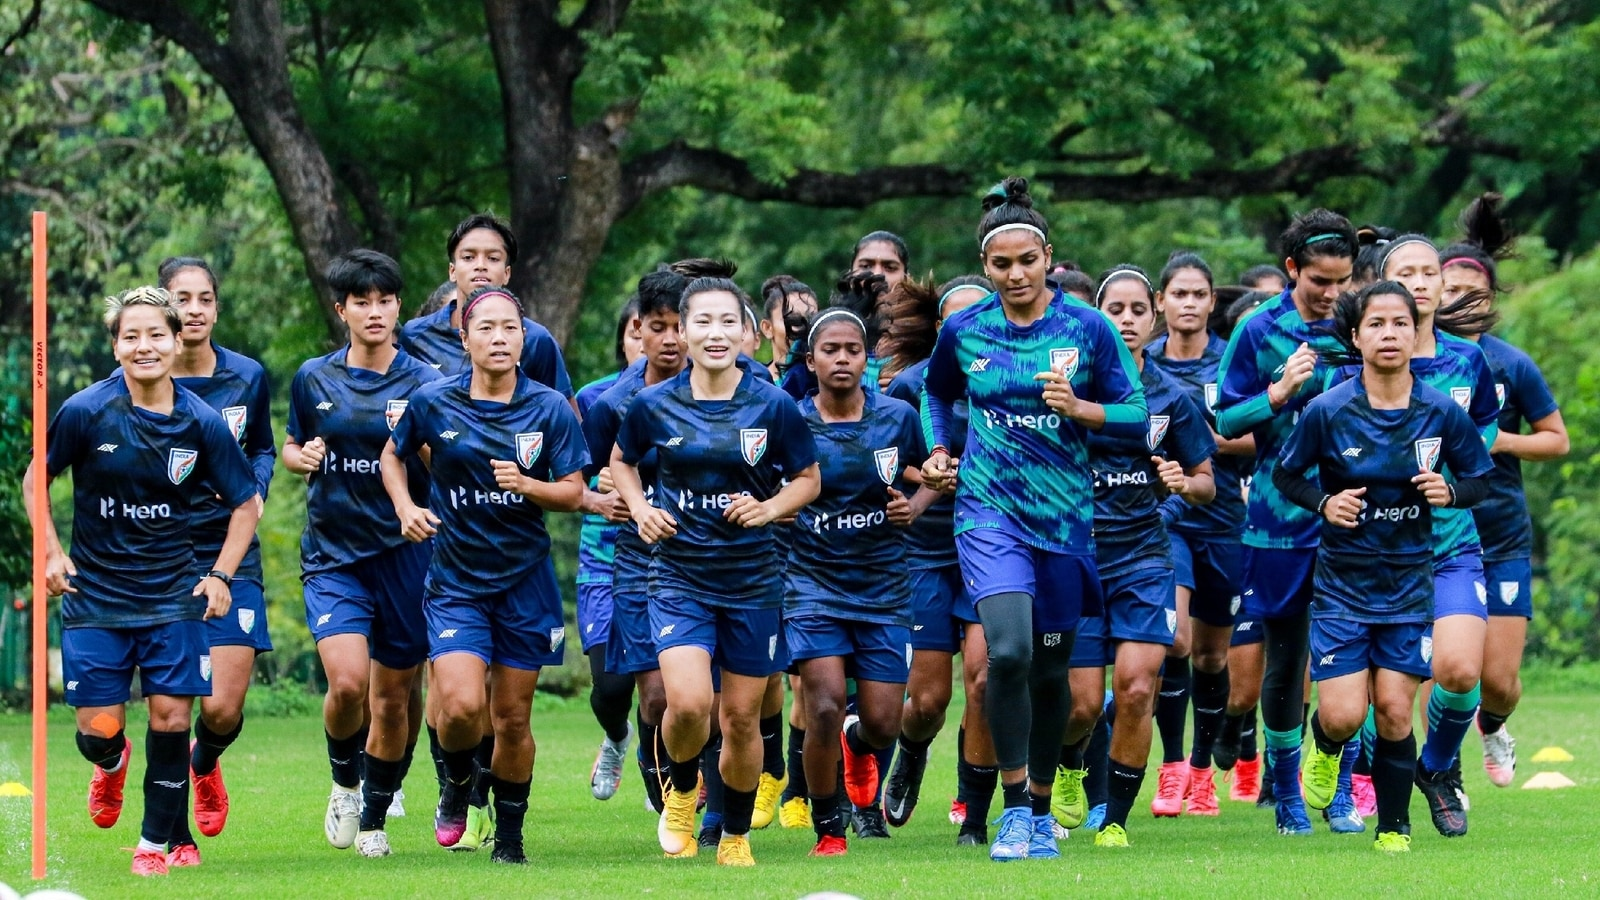 Indian Women's football team to travel abroad to play international matches